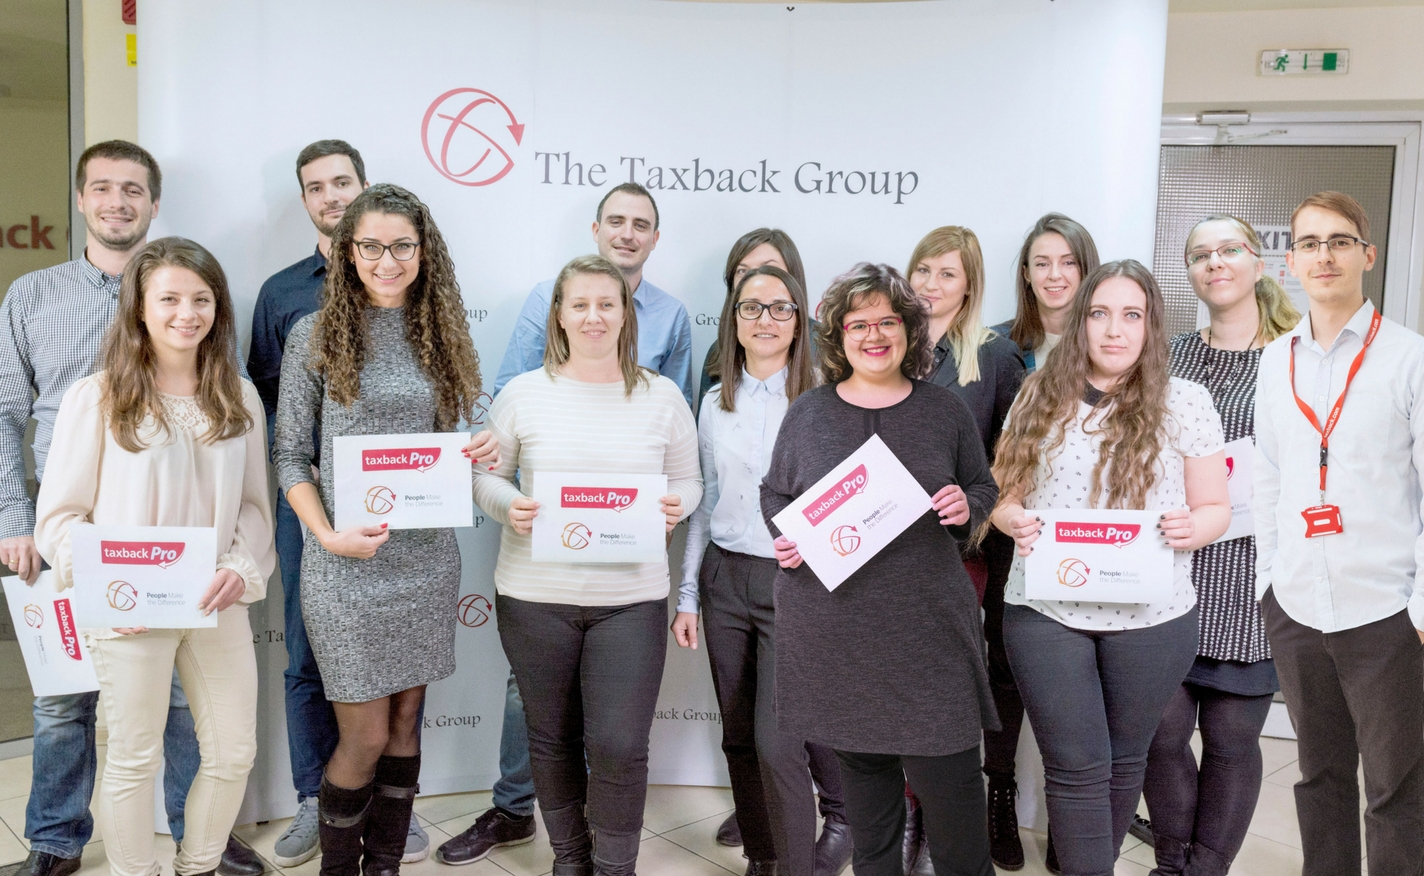 Taxback Pro Graduates with their certificates